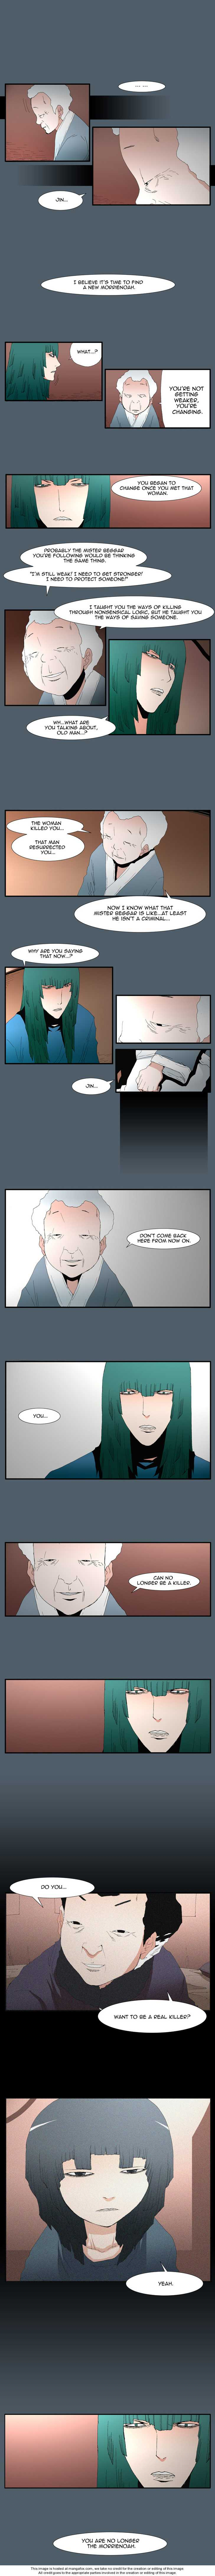 Trace 2 Page 3